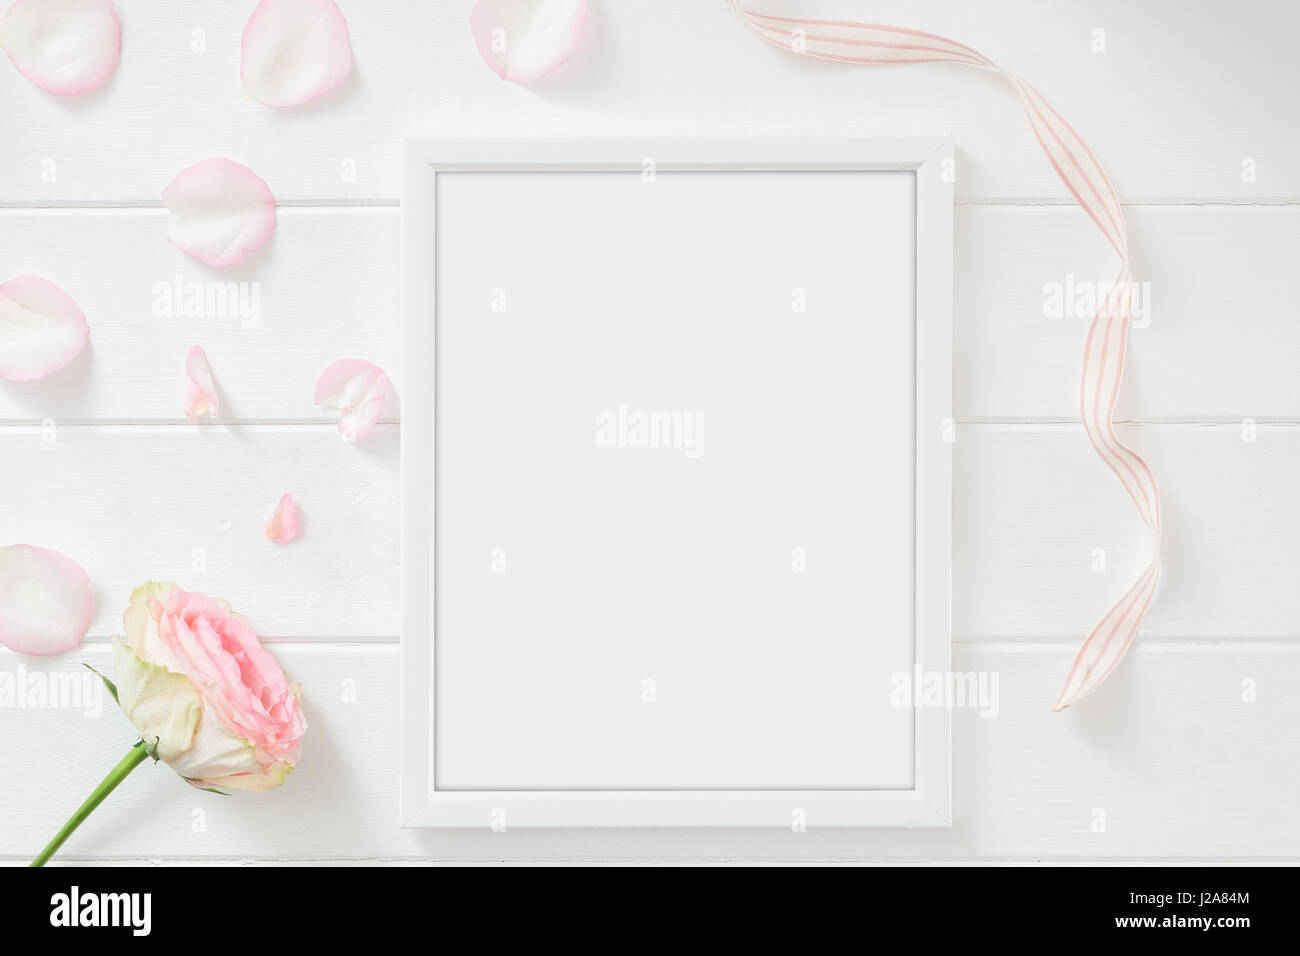 Portrait 10x8inch Frame floral themed mockup. Space for your own ...